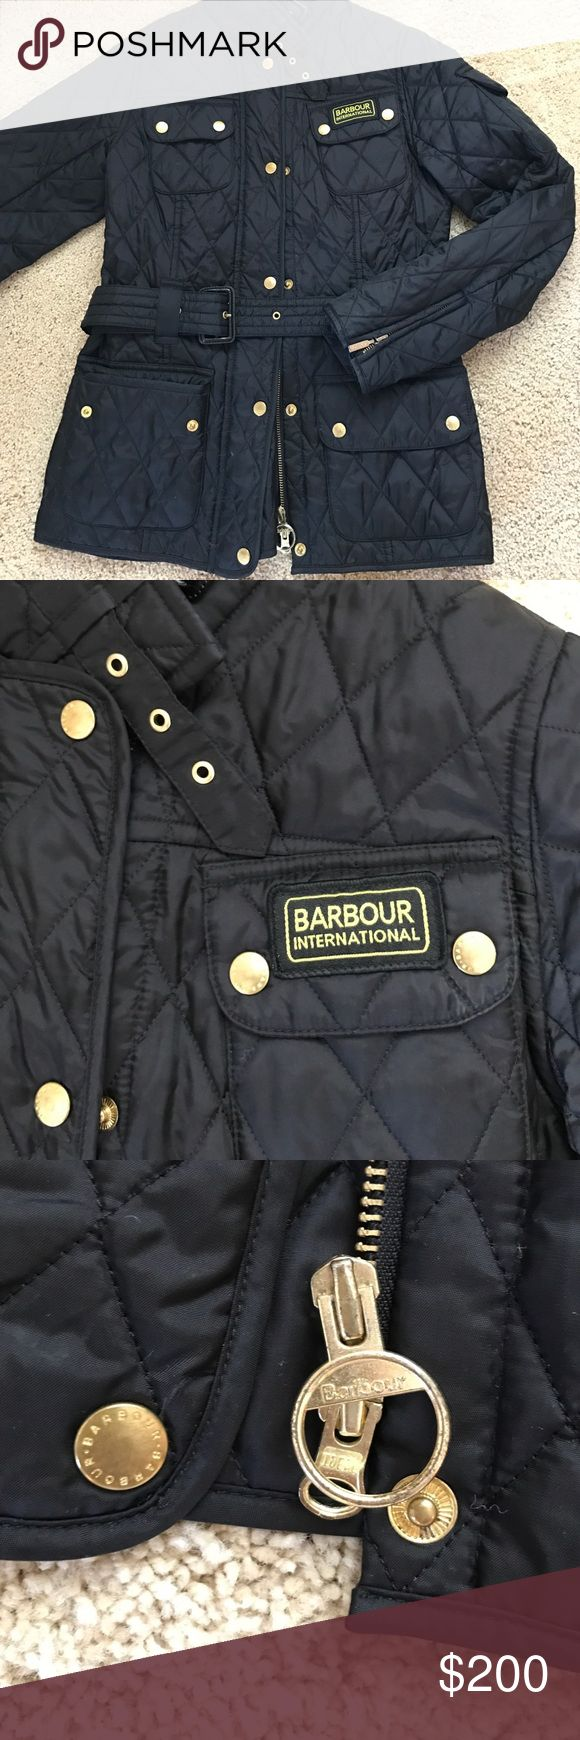 Barbour quilted jacket Black Barbour quilted belted jacket with gold zipper/buttons AUTHENTIC- worn a couple times looks completely brand new! Barbour Jackets & Coats